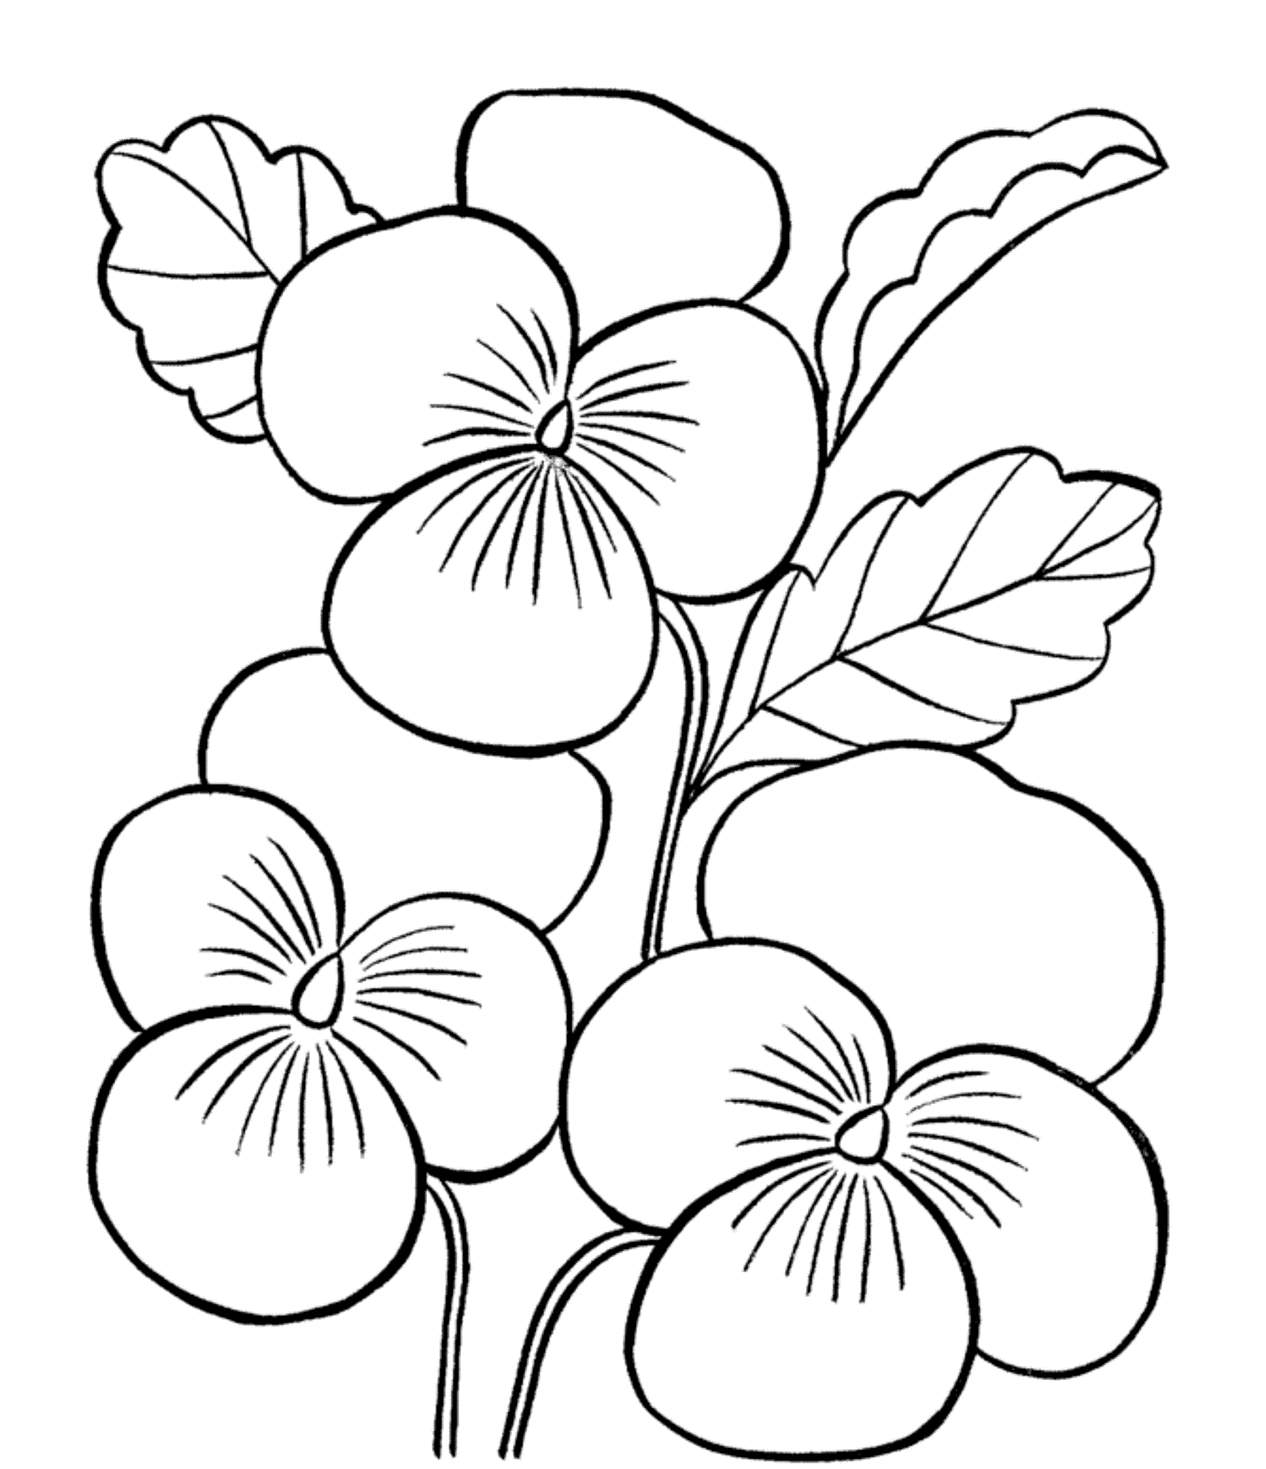 1266x1469 Fresh Orchid Flower Coloring Sheet Gallery Printable Coloring Sheet